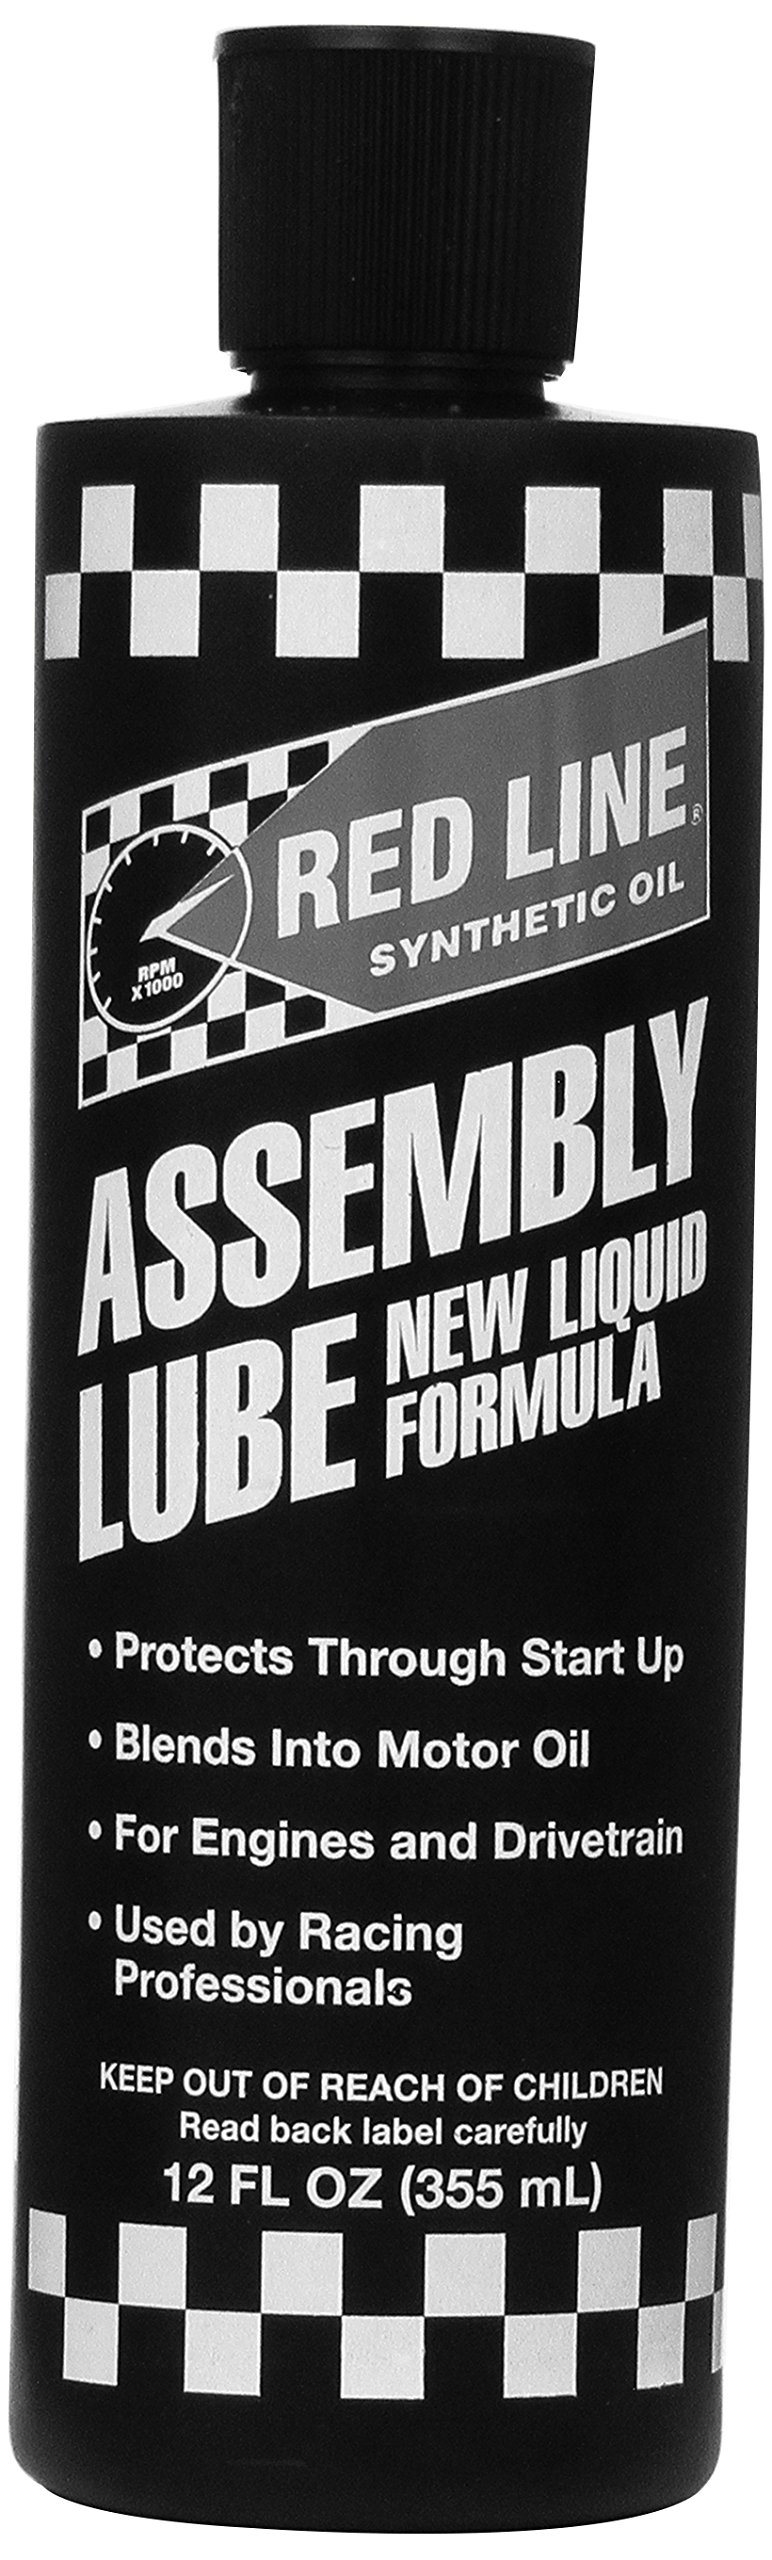 Red Line 80329 Liquid Assembly Lube - 12 oz, (Case of 6)